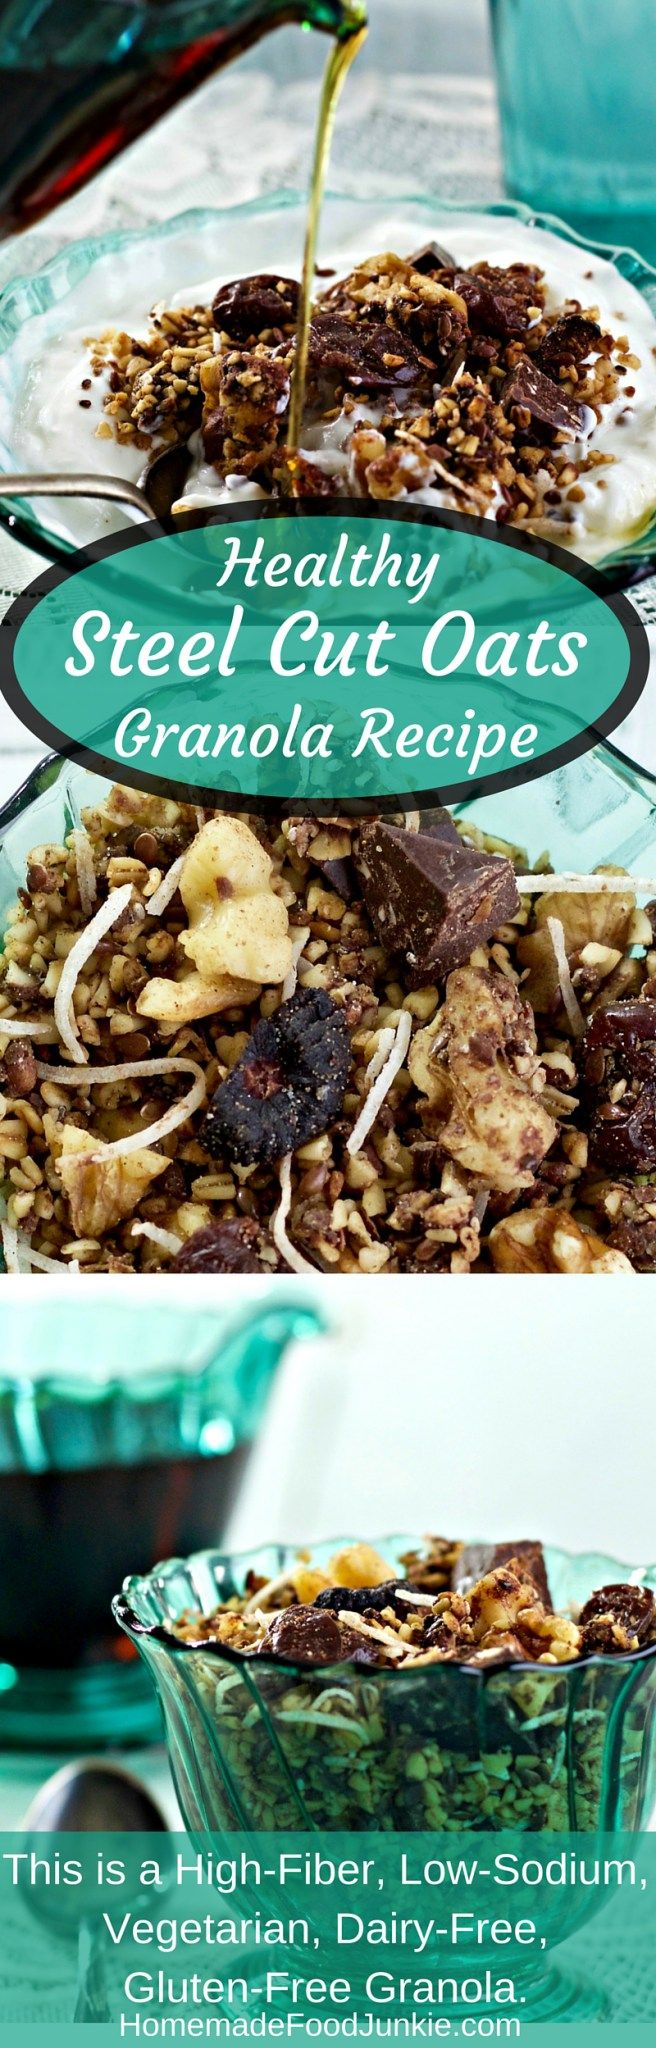 Healthy Steel Cut Oats Granola Recipe is a nutritionally balanced, chewy textured granola with no added sugar! I added dark chocolate chunks, dried figs, cherries, and coconut flakes. This is a High-​Fiber, Low-​Sodium, Vegetarian, Dairy-​Free, Gluten-​Free Granola. http://HomemadeFoodjunkie.com